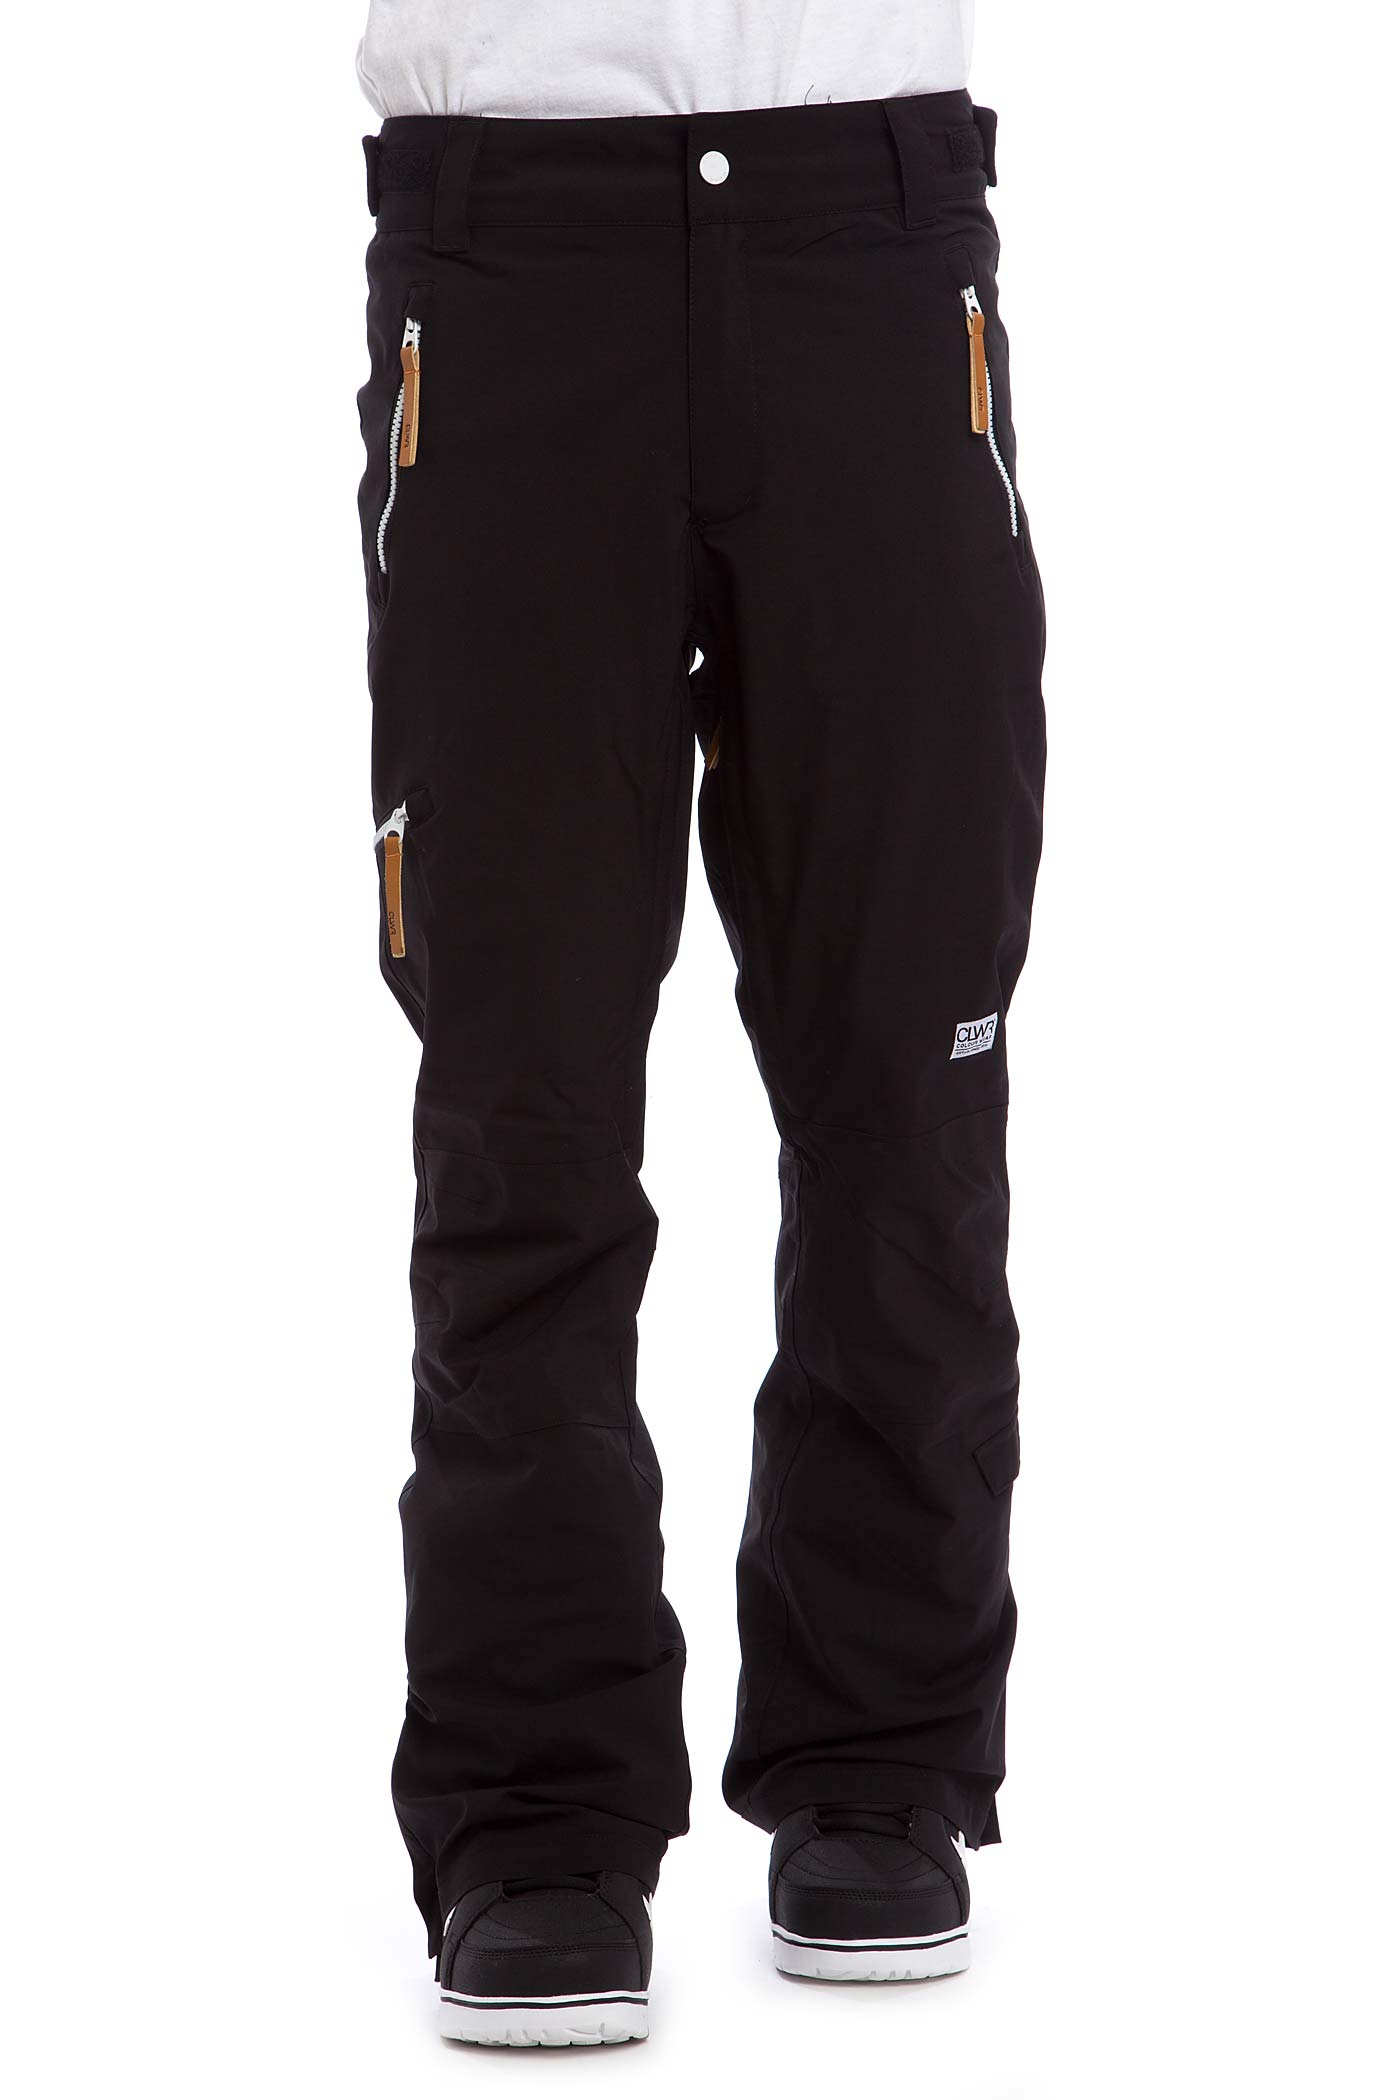 how to buy snowboard pants